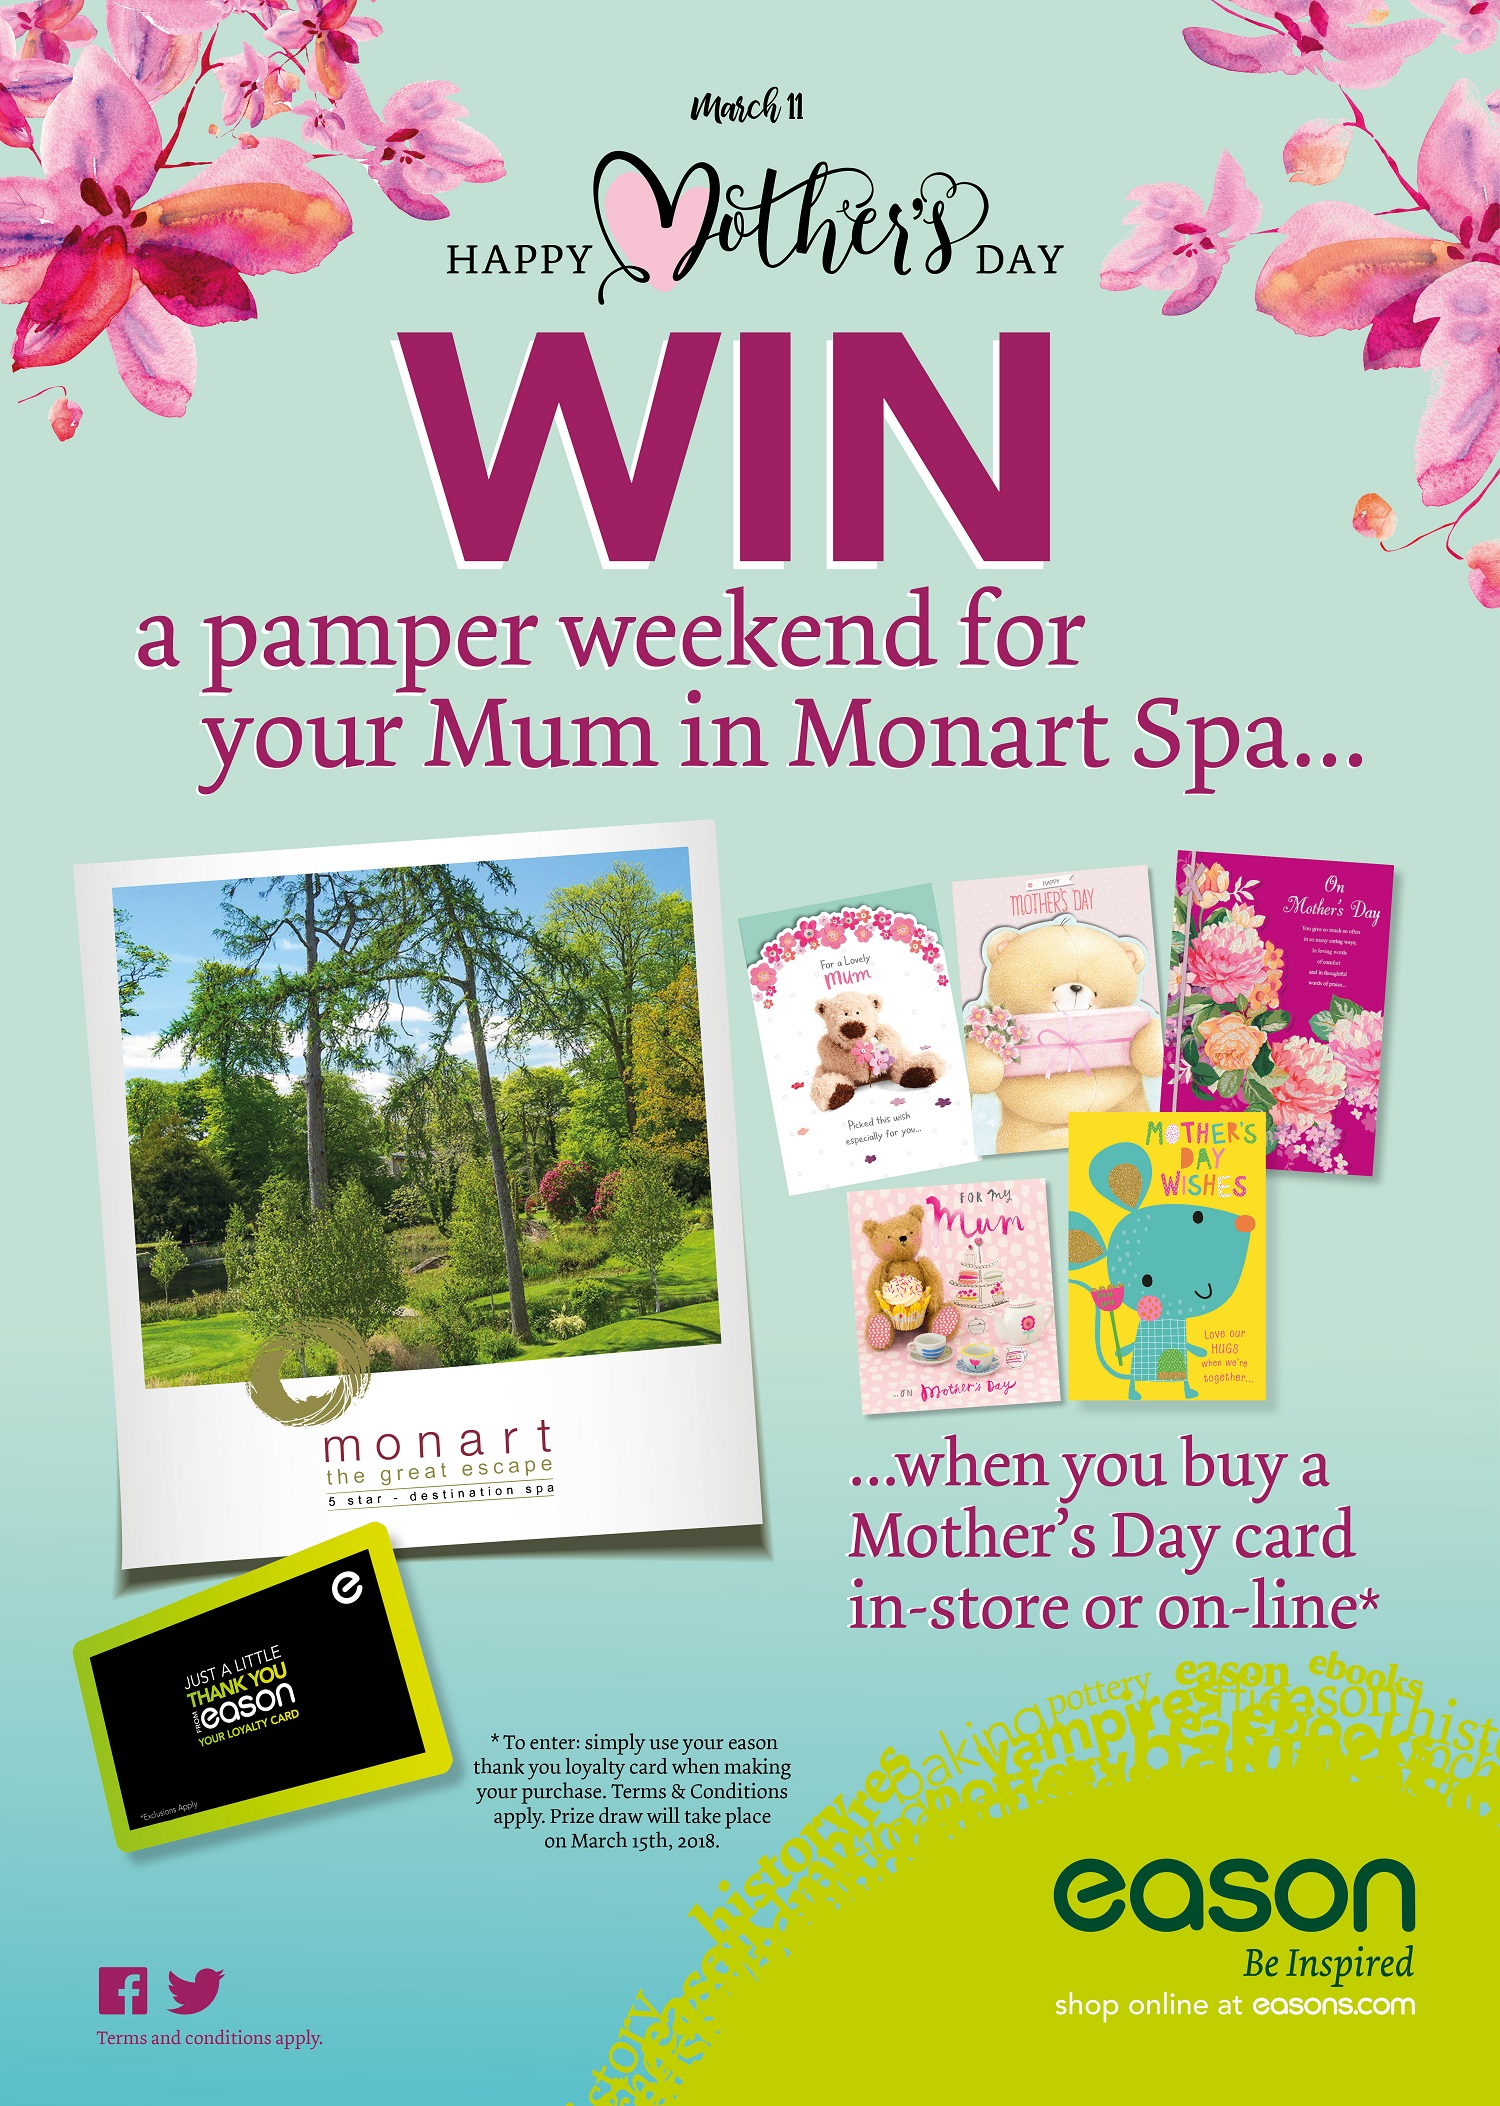 WIN a pamper weekend compliments of Easons